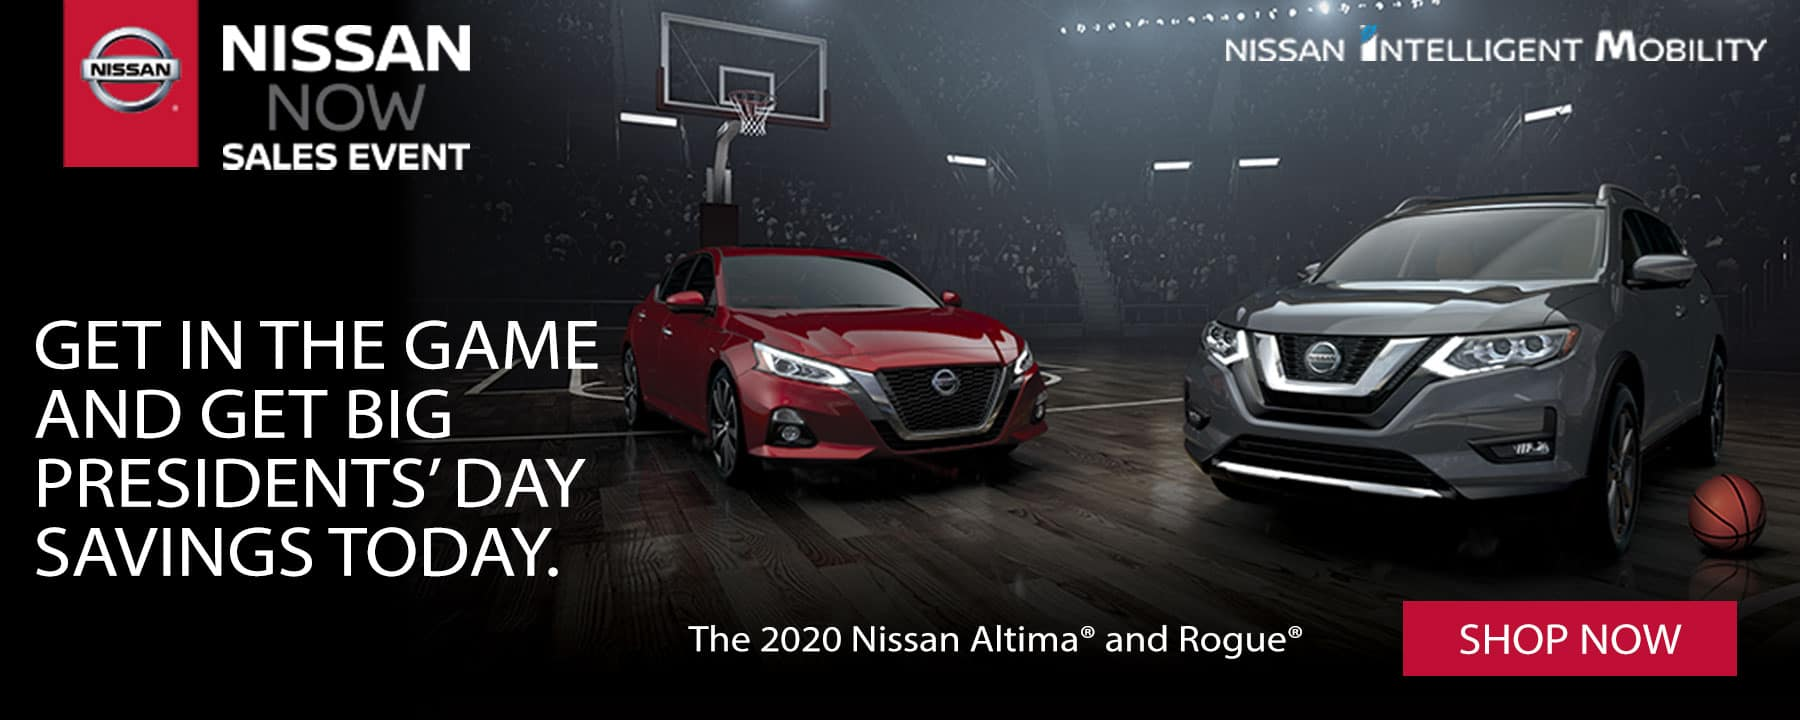 Get Big Presidents' Day Savings During the Nissan Now Sales Event!